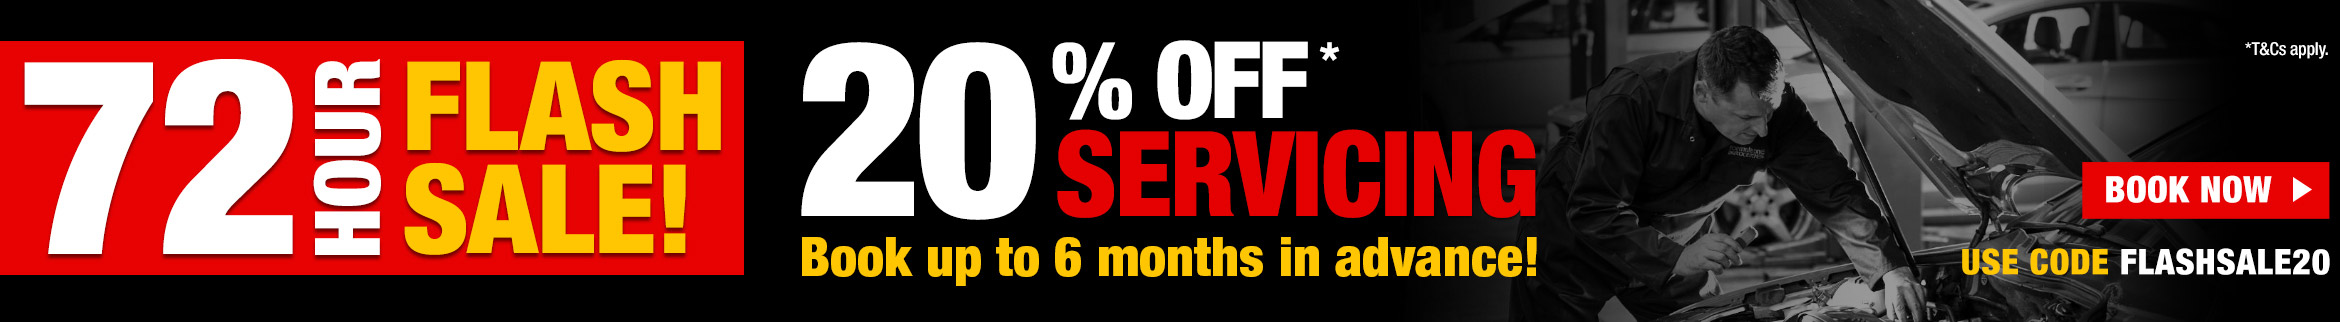 72 Hour Flash Sale - 20% off Servicing